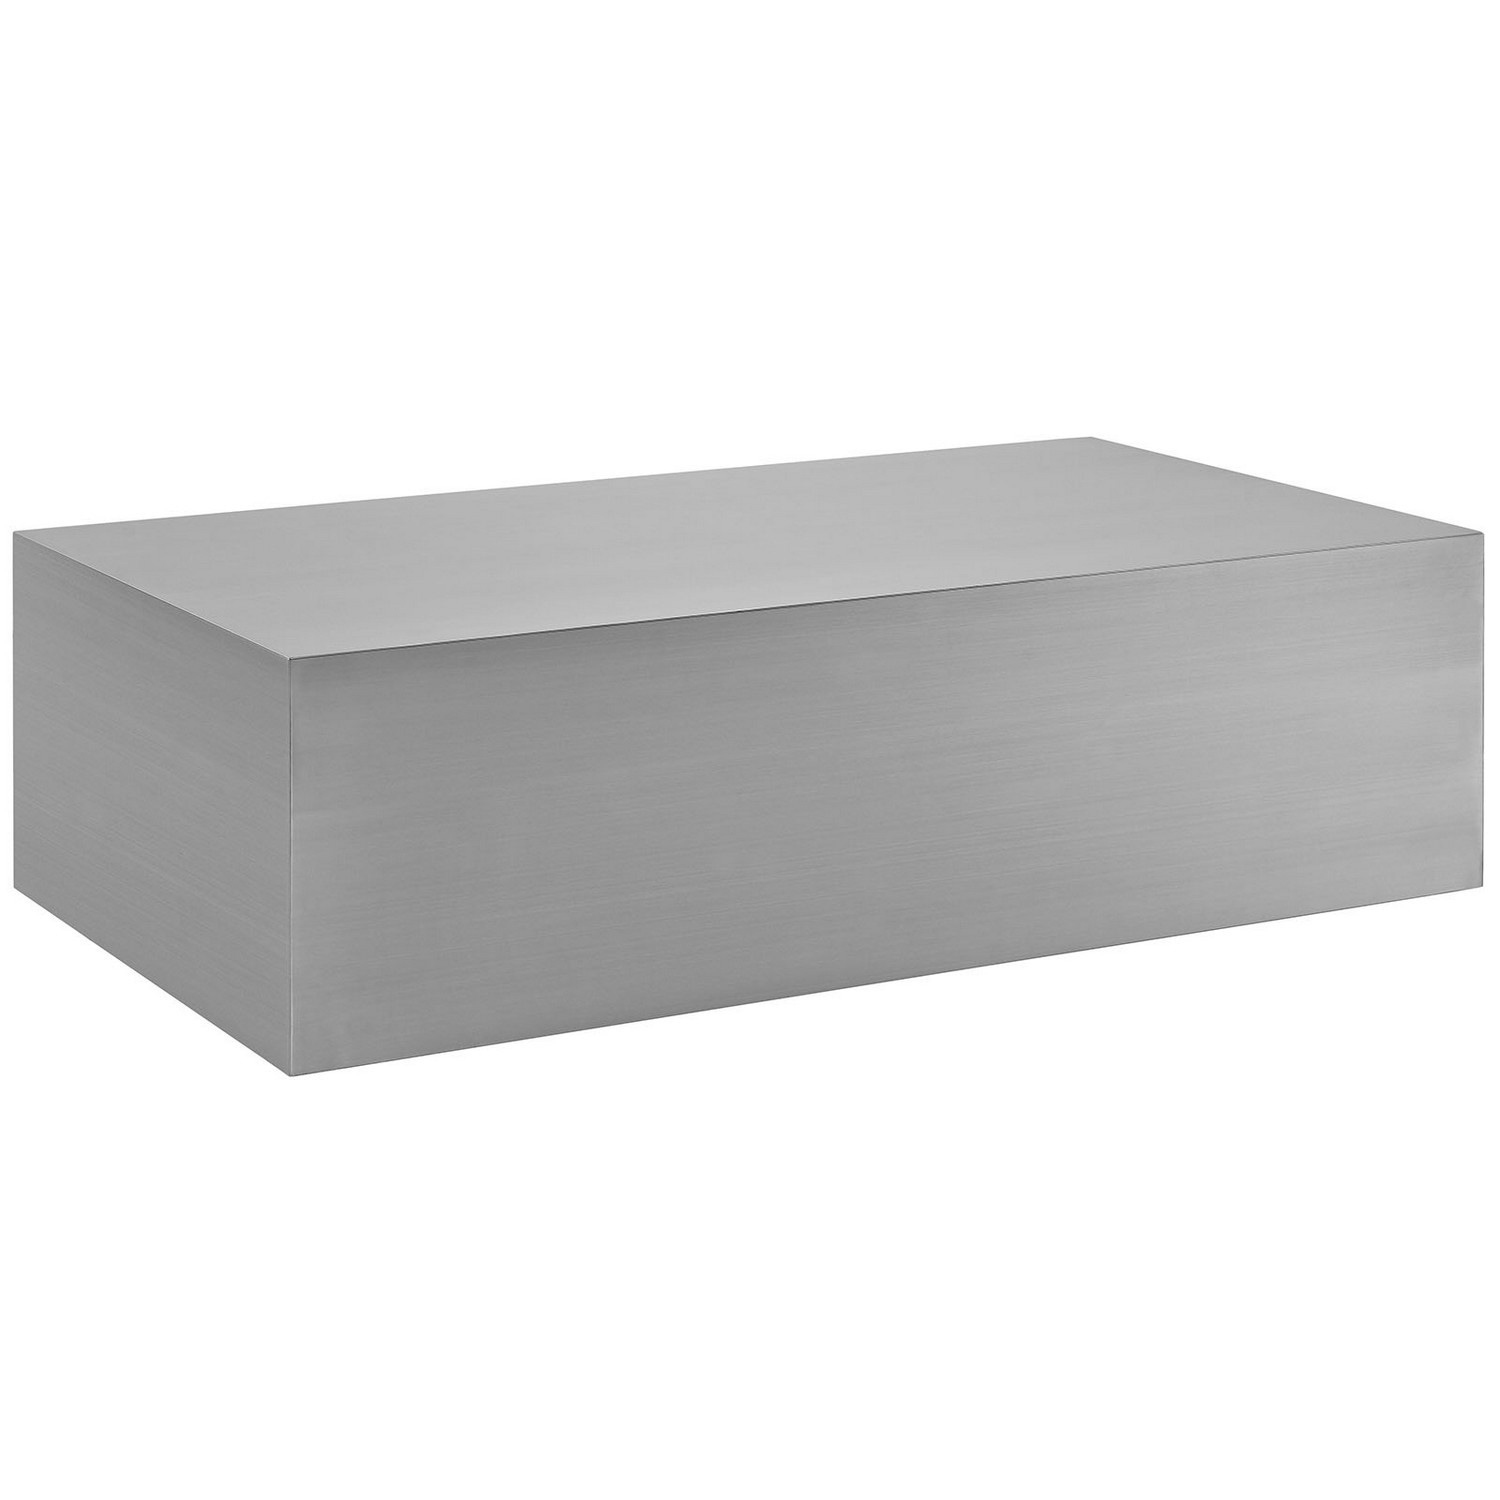 Modway Cast Stainless Steel Coffee Table - Silver